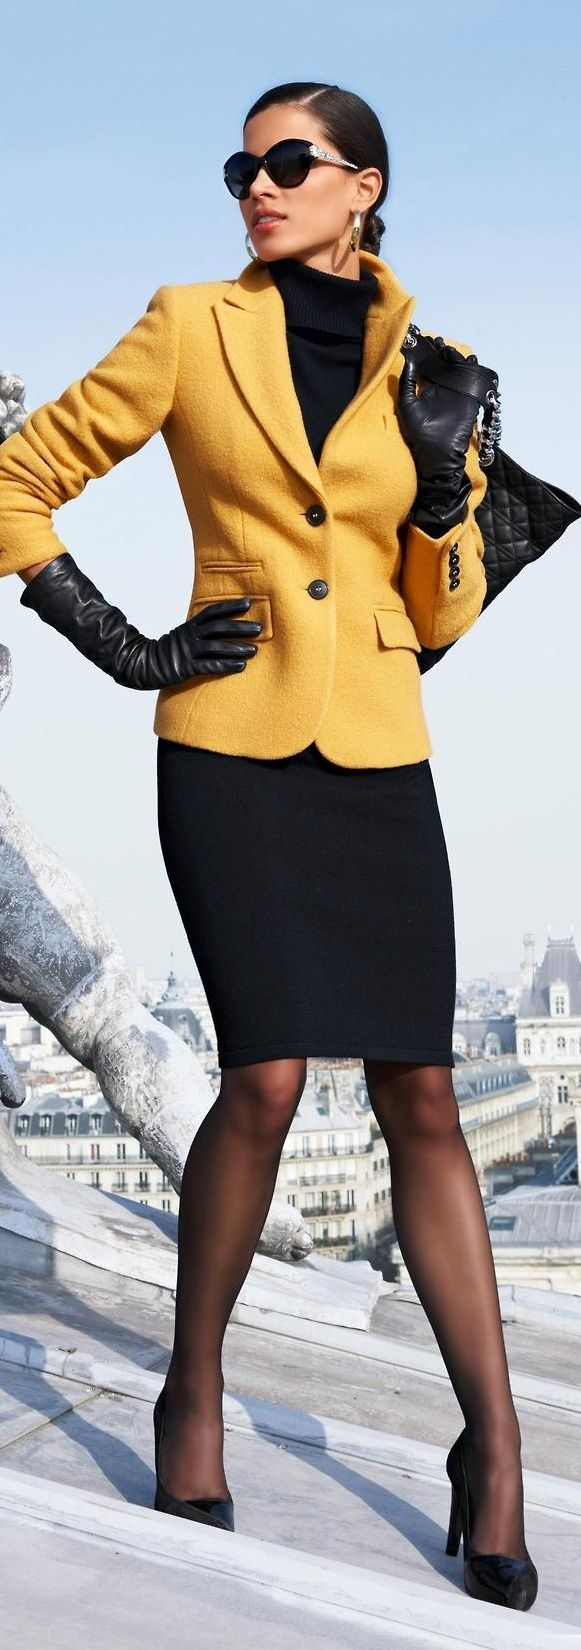 smart casual urban fashion with yellow jacket.  Oh I wish I could look like this...!